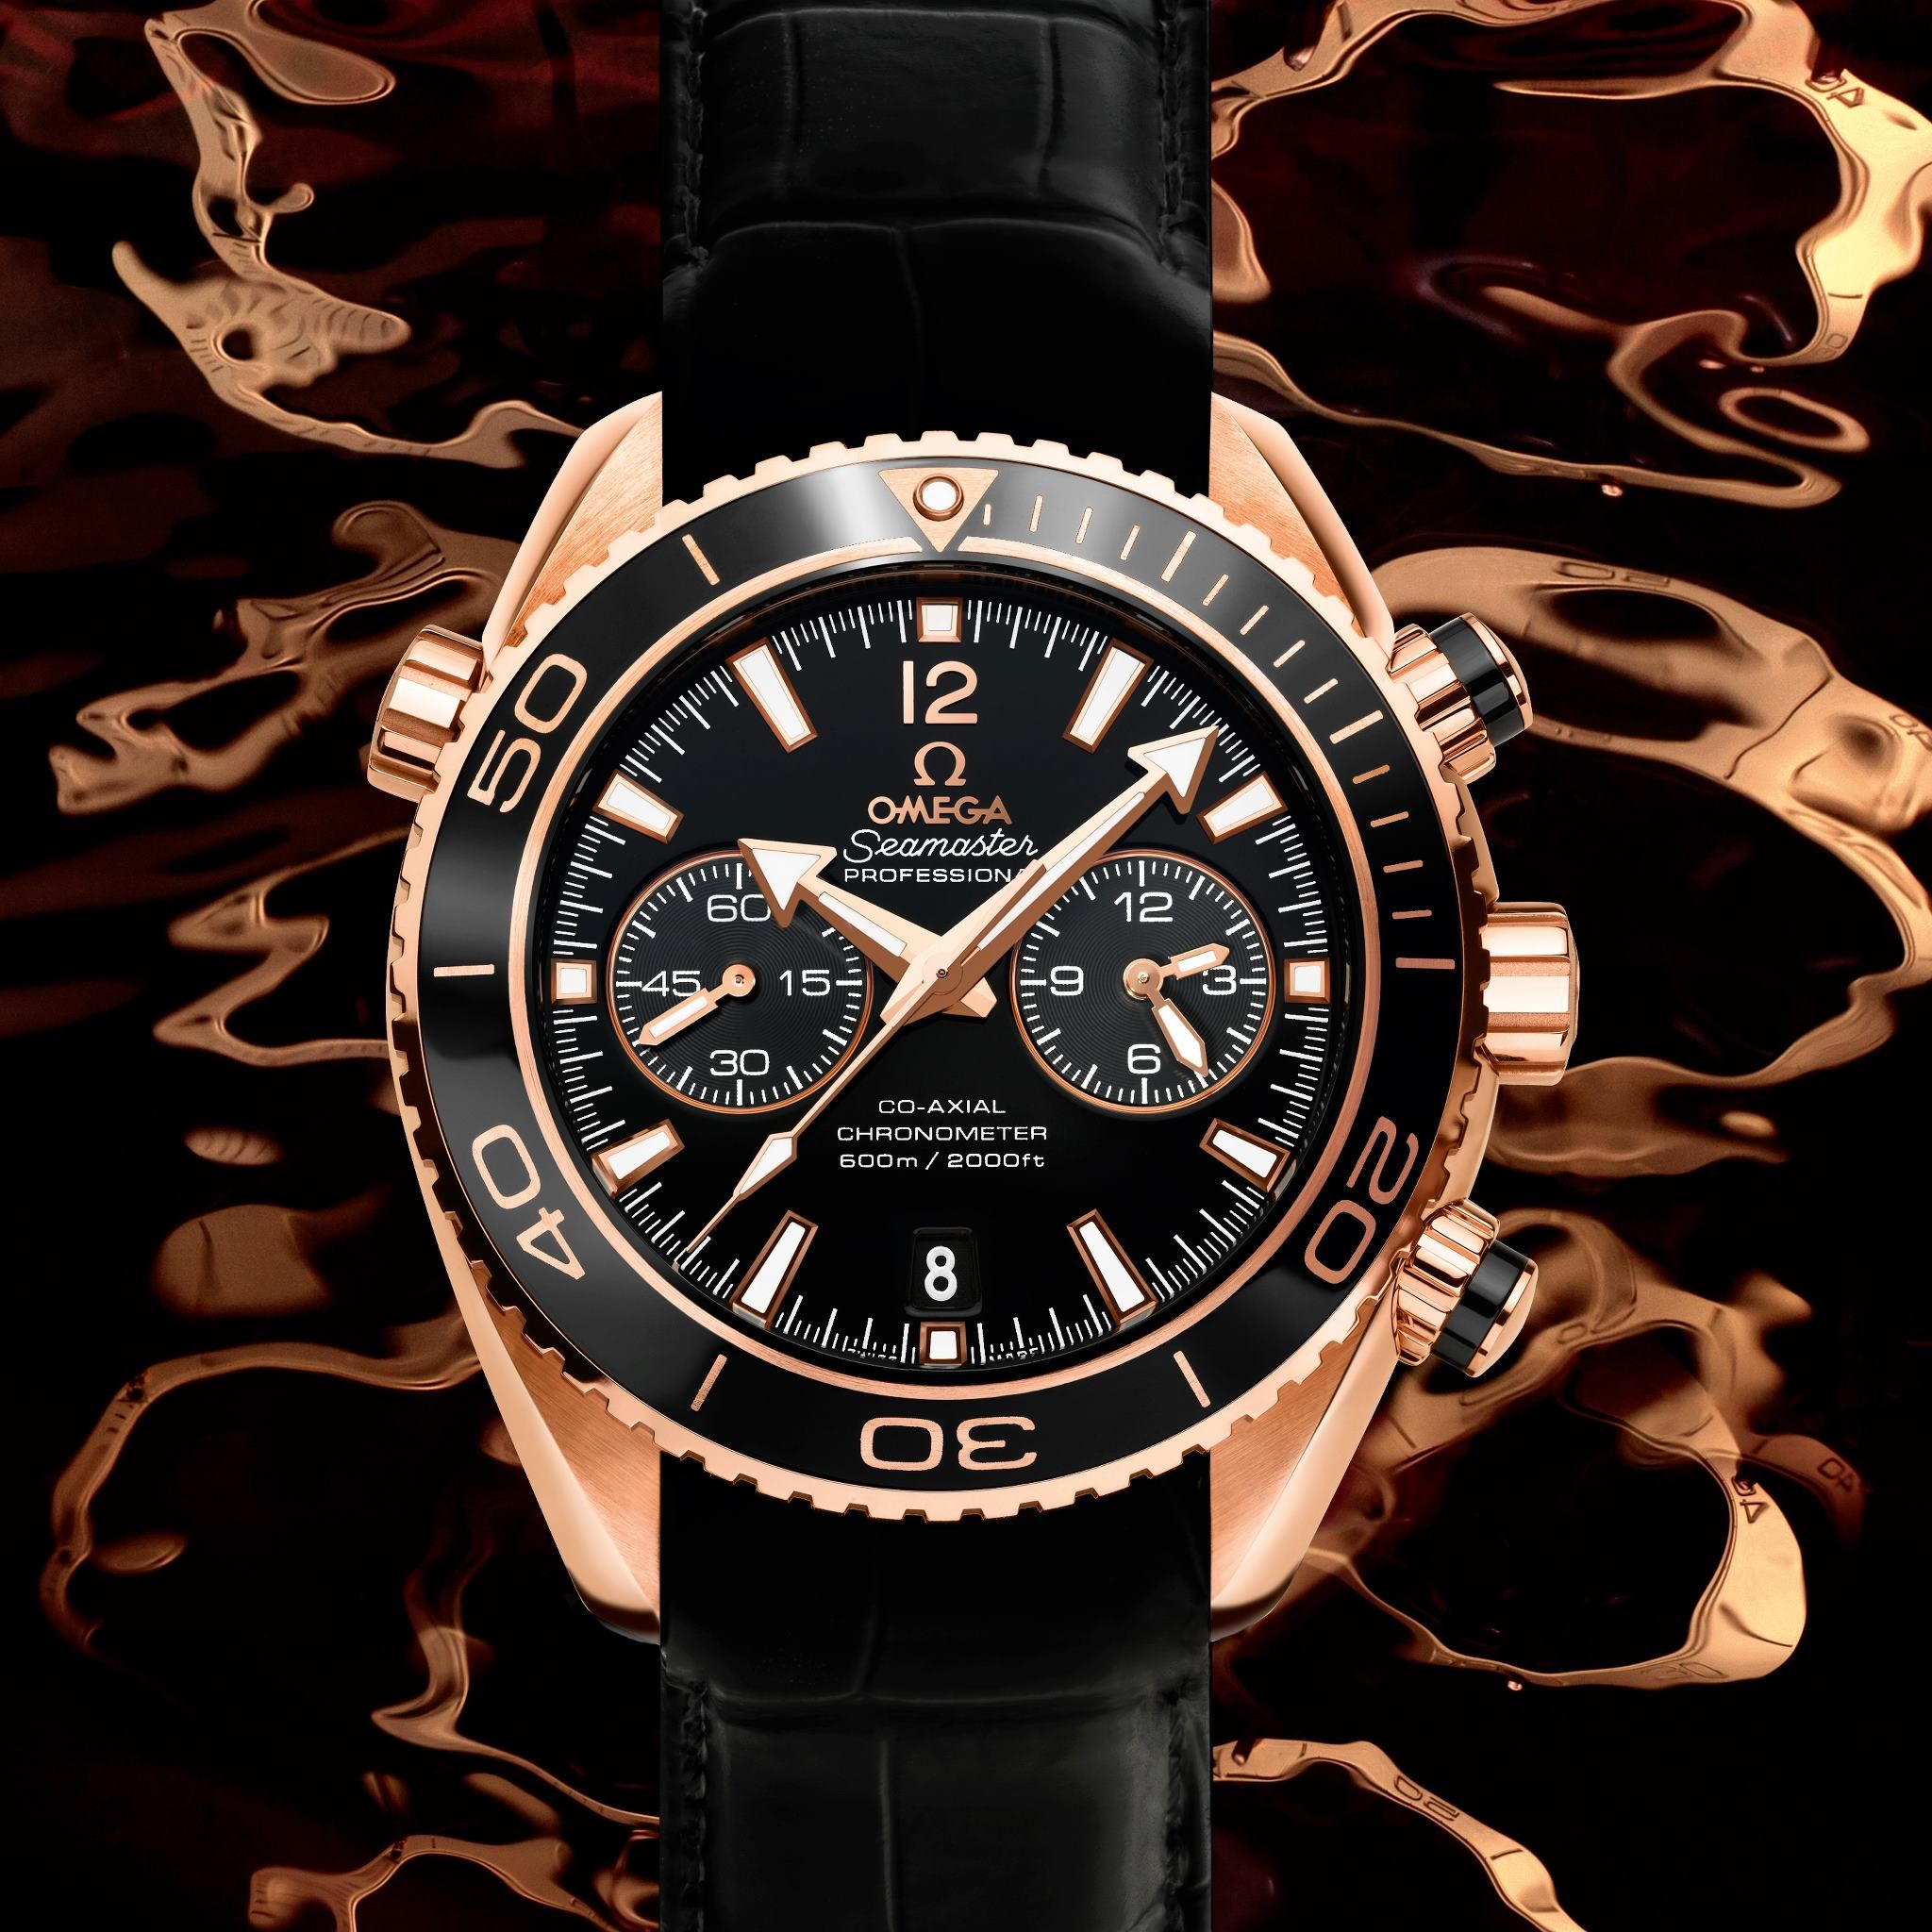 Pin By Atamian On Watches Men Omega Watch Omega Planet Ocean Omega Seamaster